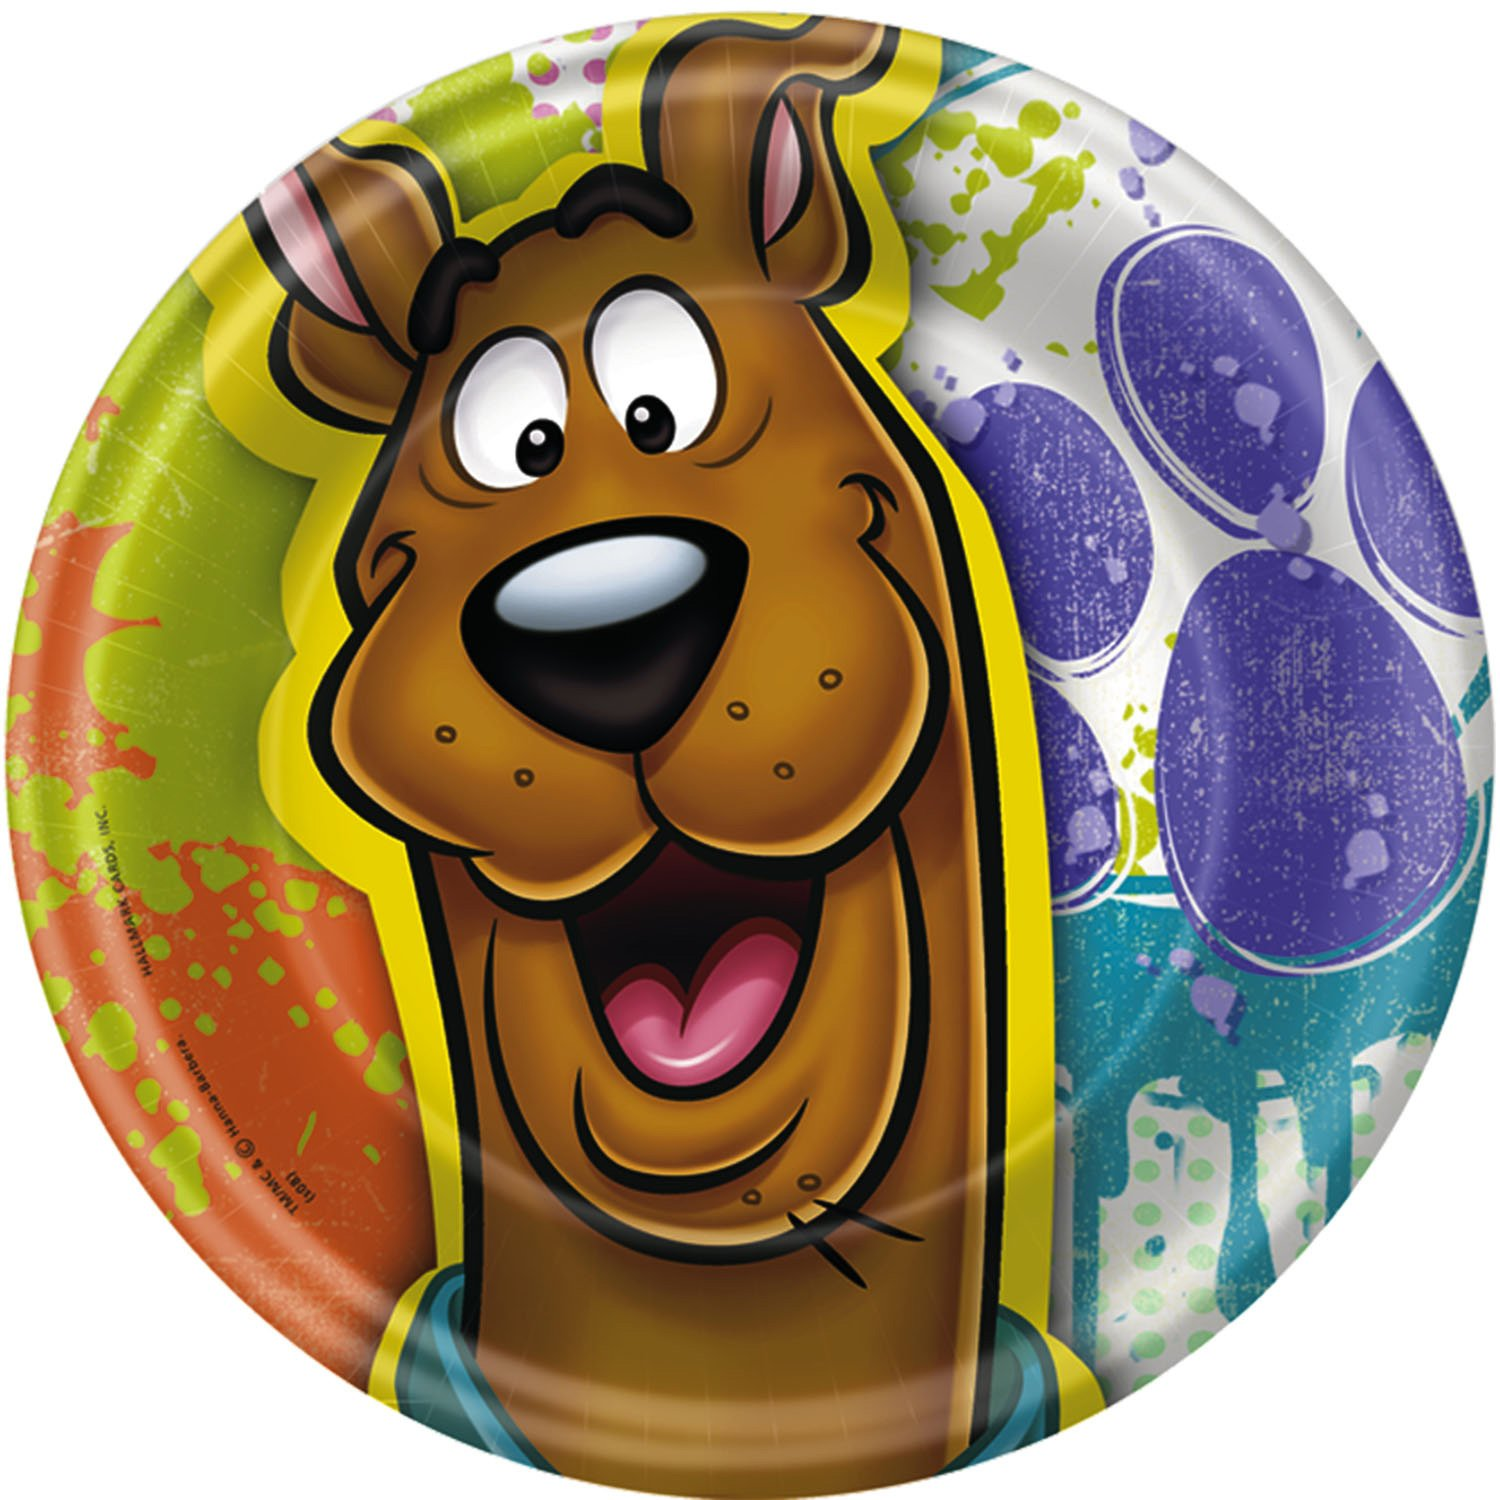 Scooby Doo Pictures Cartoons Wallpapers Videos  Free Scooby Doo